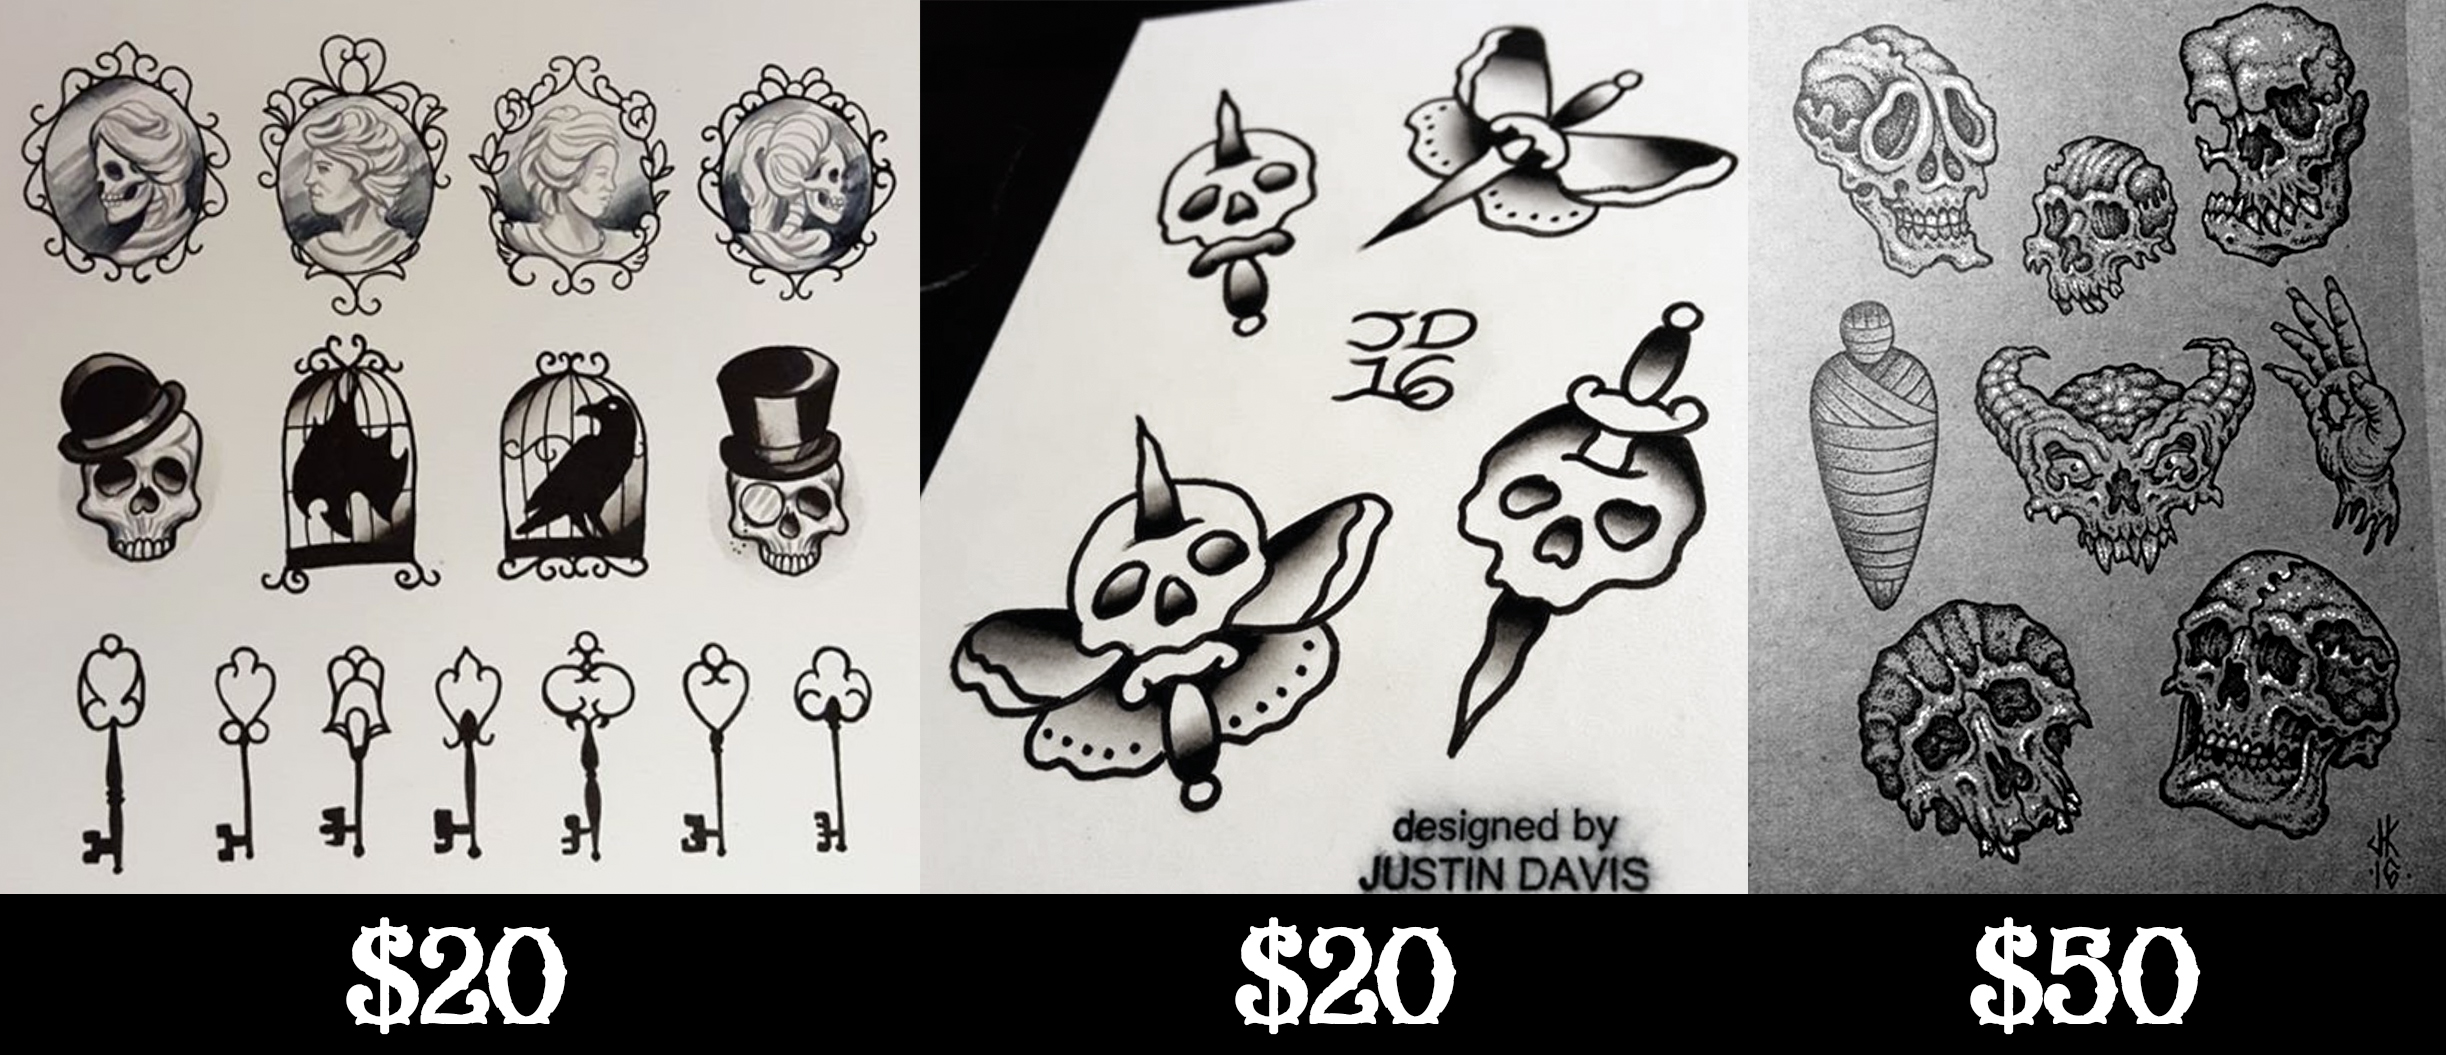 Friday the 13th special moth and dagger tattoo studio for Friday the 13th tattoo specials near me